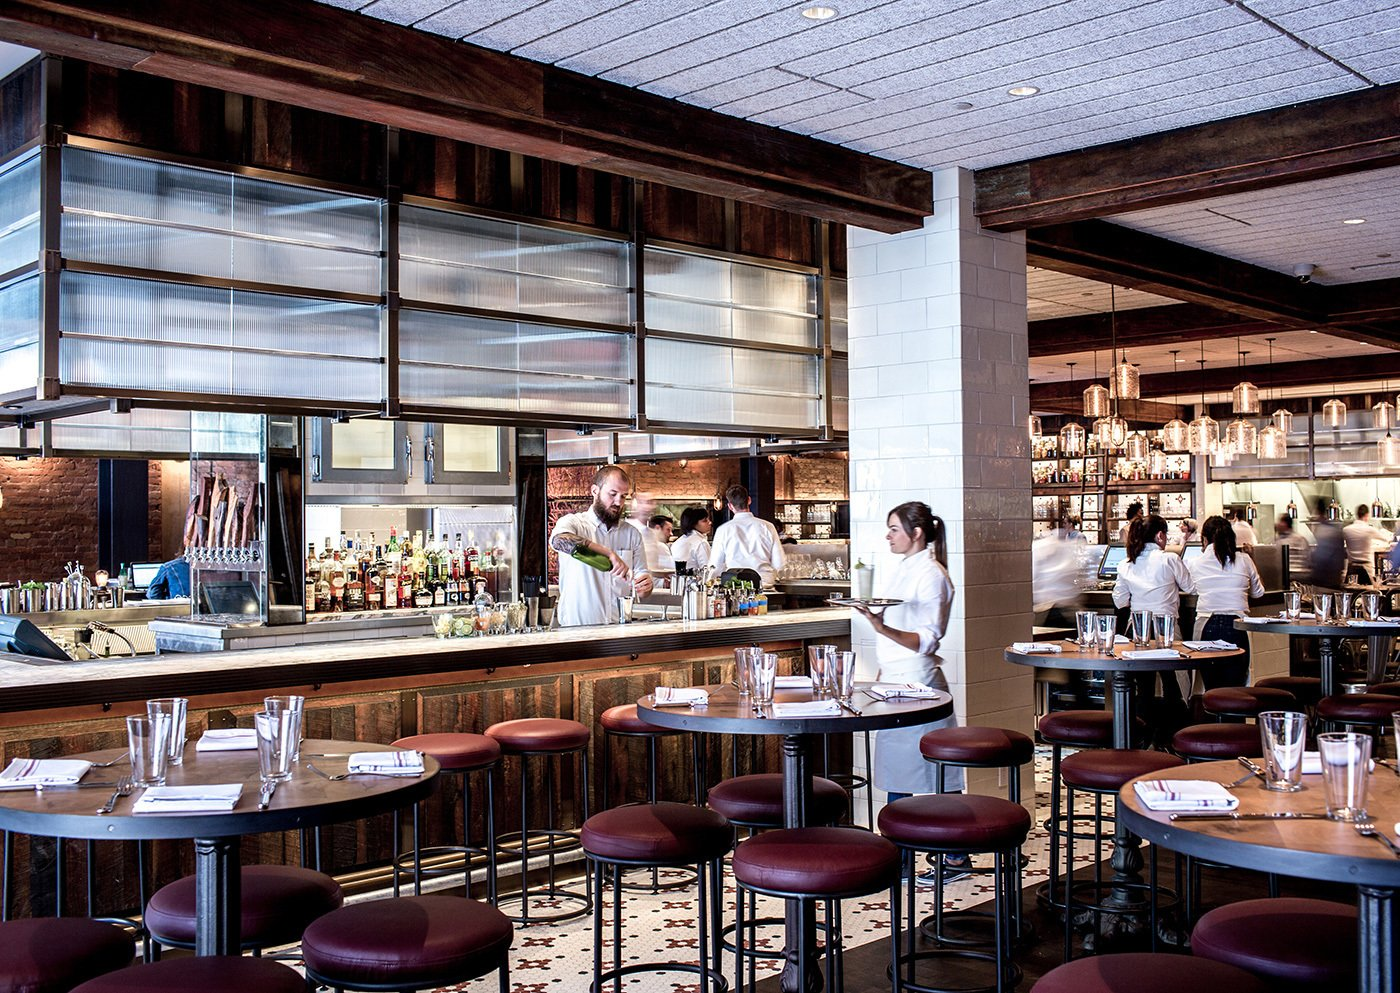 Photo 4 of 4 in Modern Restaurant Pendant Lights Add to Charm of Popular Dallas Eatery